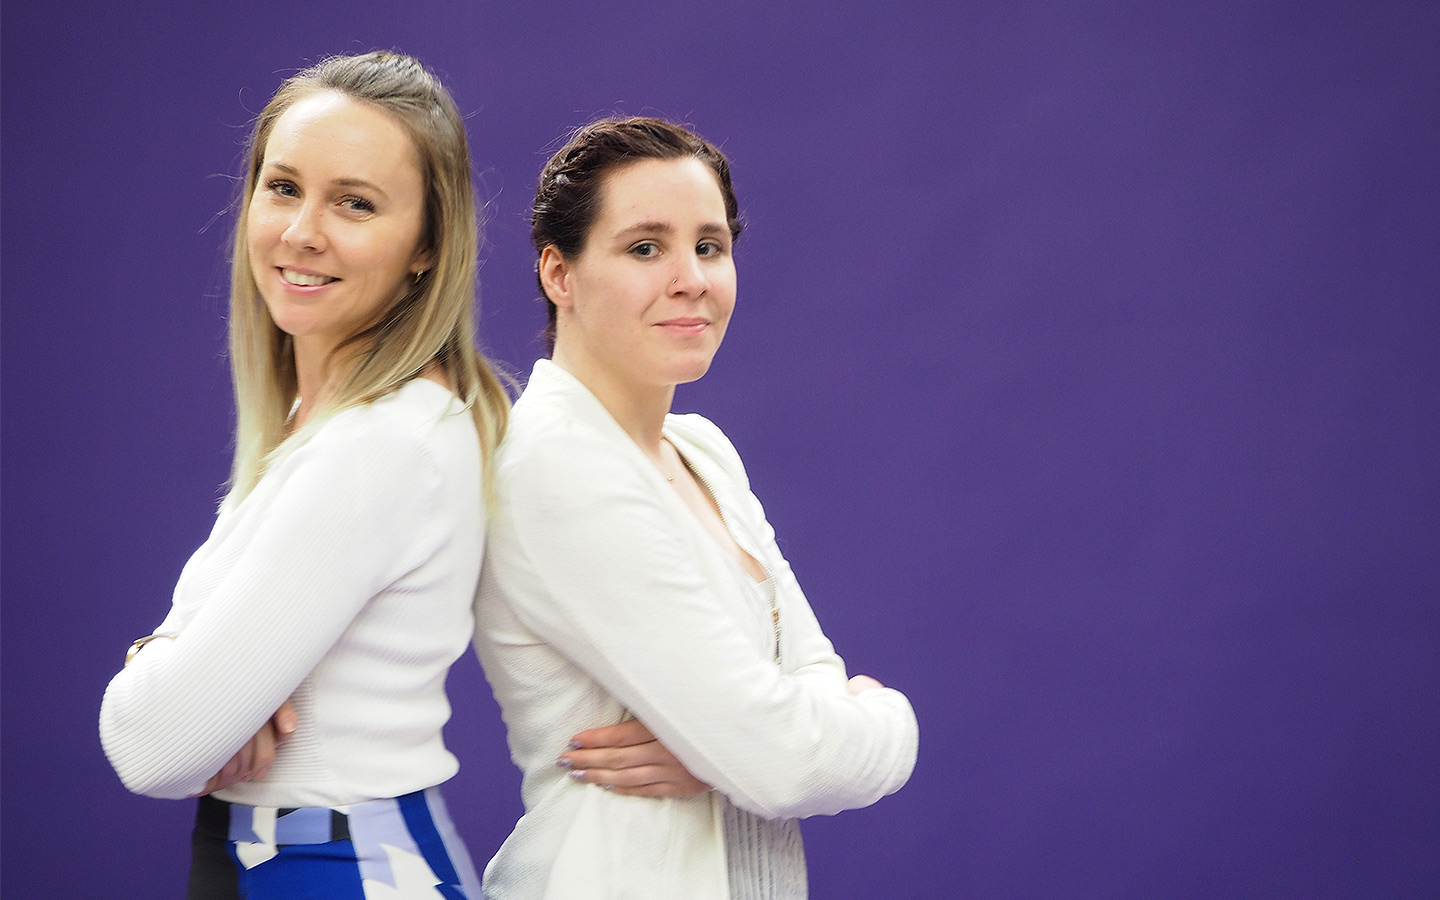 Two women standing in front of a purple background